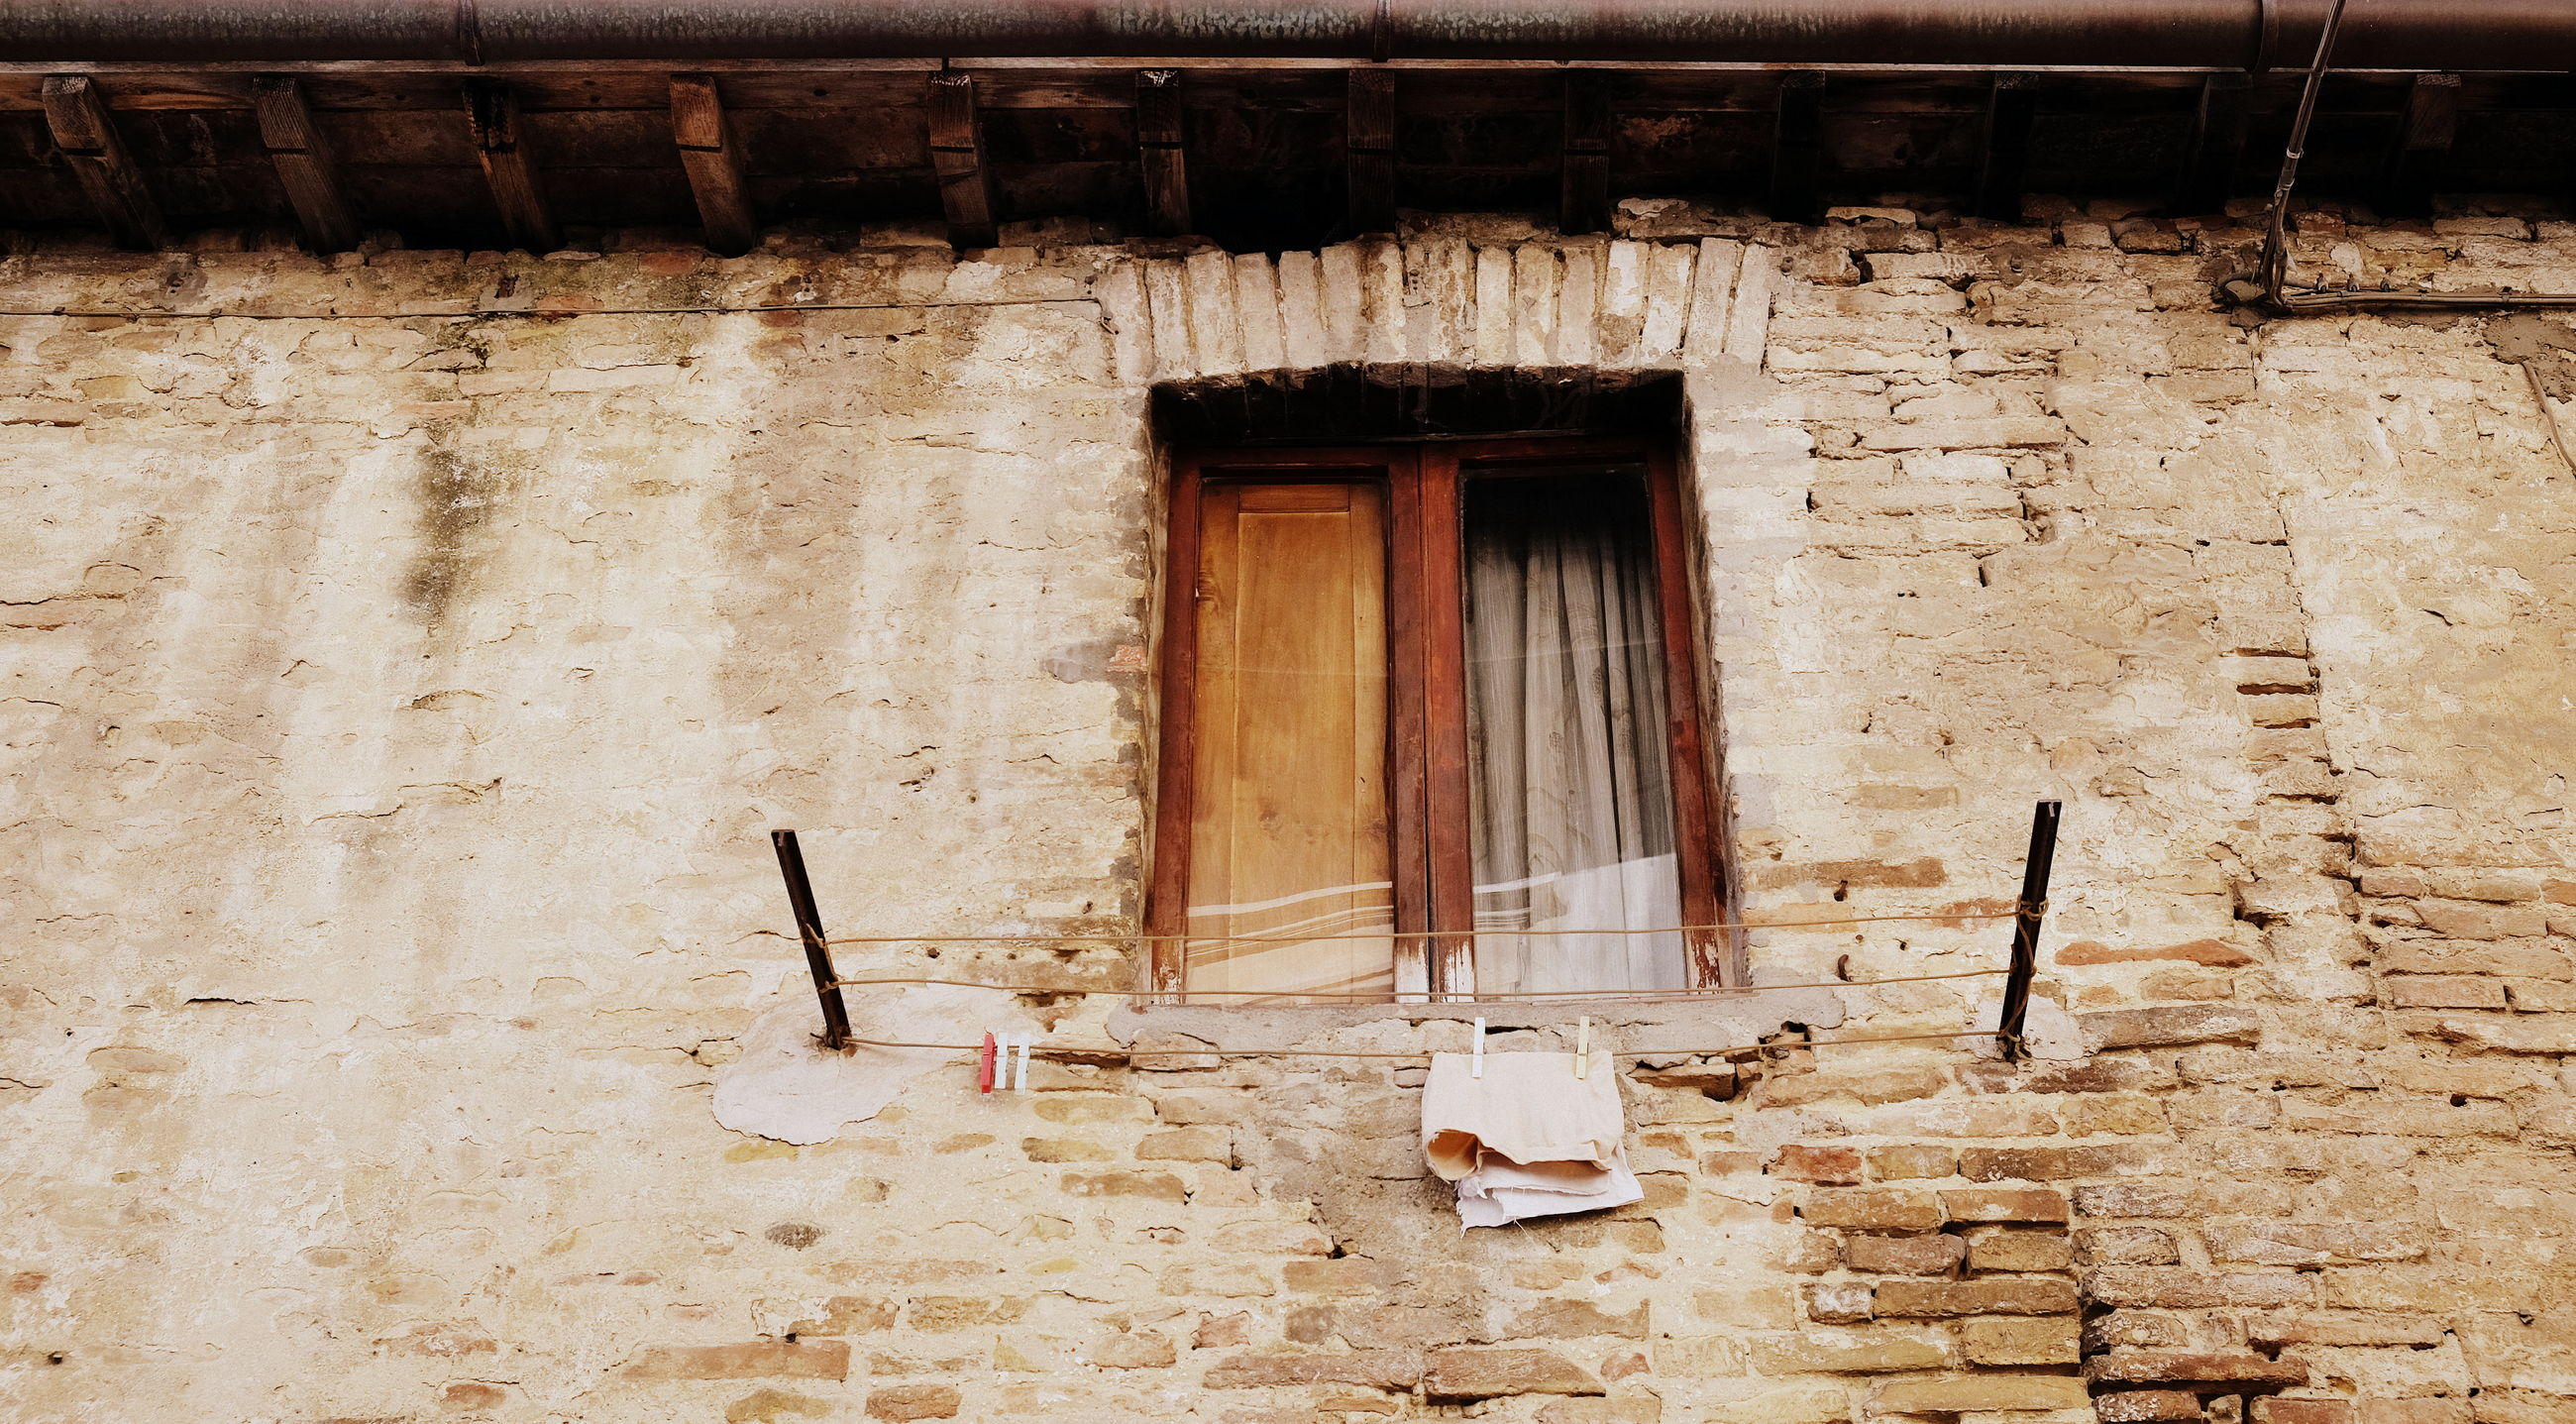 architecture, built structure, building, building exterior, day, no people, house, window, old, entrance, abandoned, wall, door, outdoors, damaged, residential district, wall - building feature, weathered, history, broken, ruined